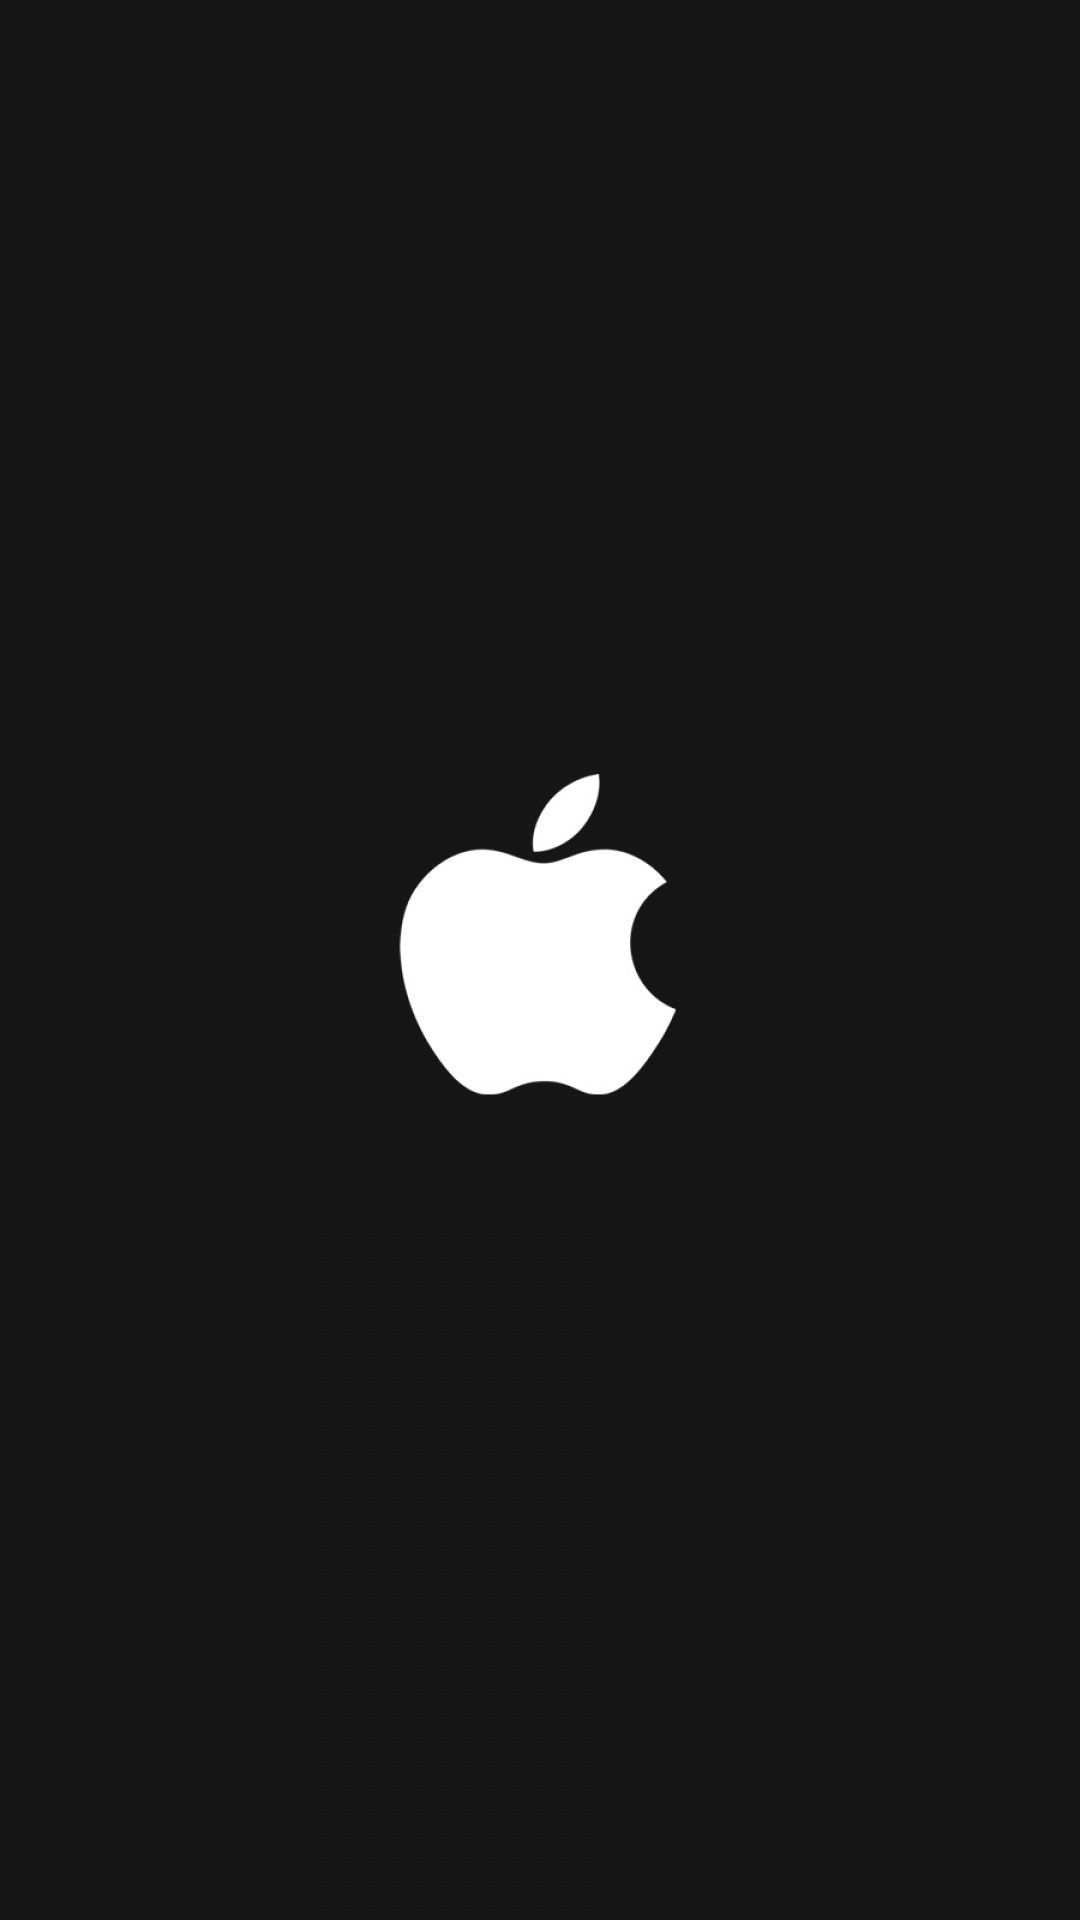 B W Quenalbertini Apple Logo Iphone Wallpaper Iphone 6 Iphon